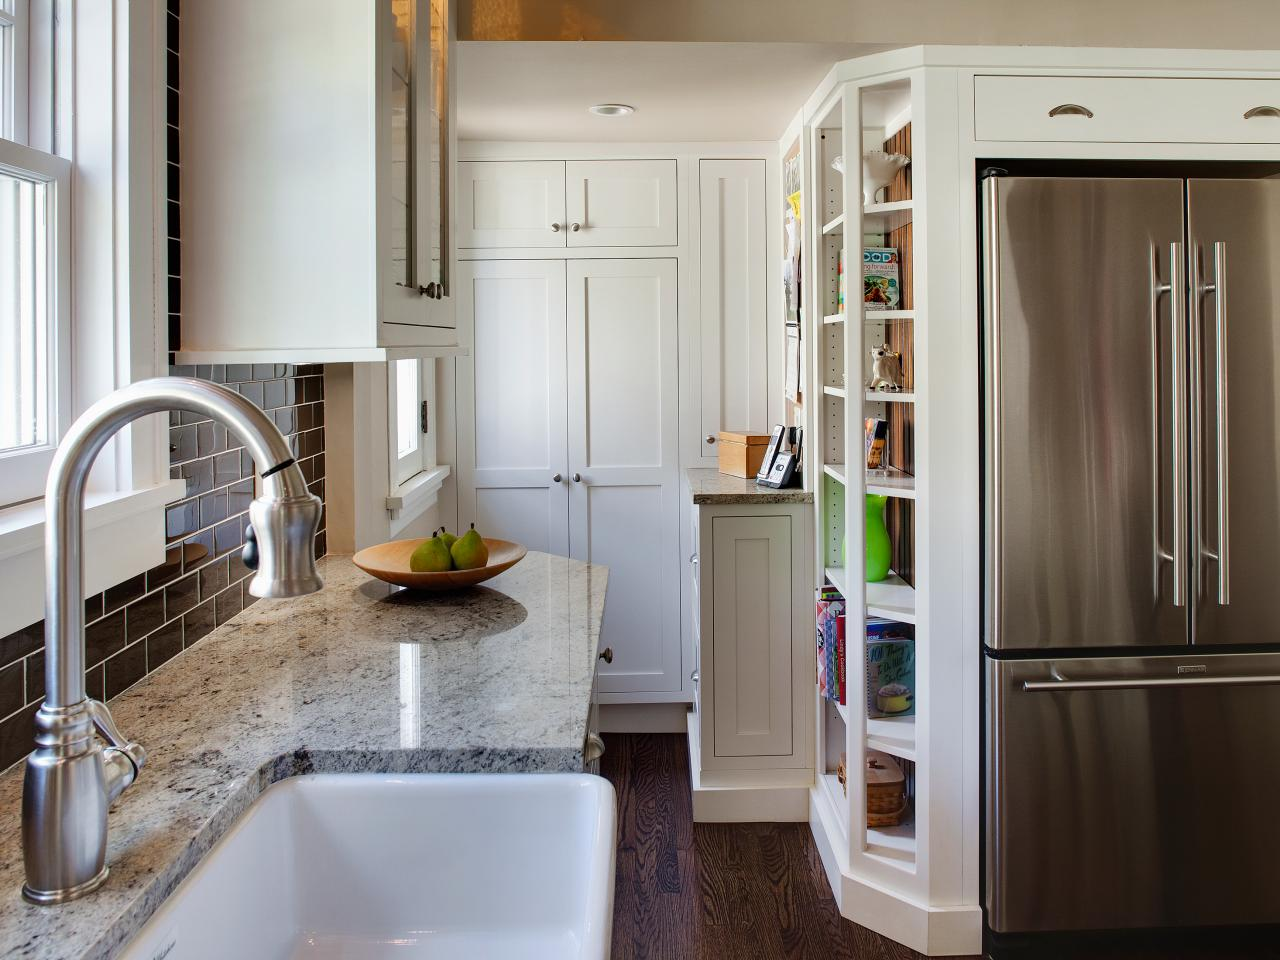 Small Kitchens: 8 Design Ideas to Try